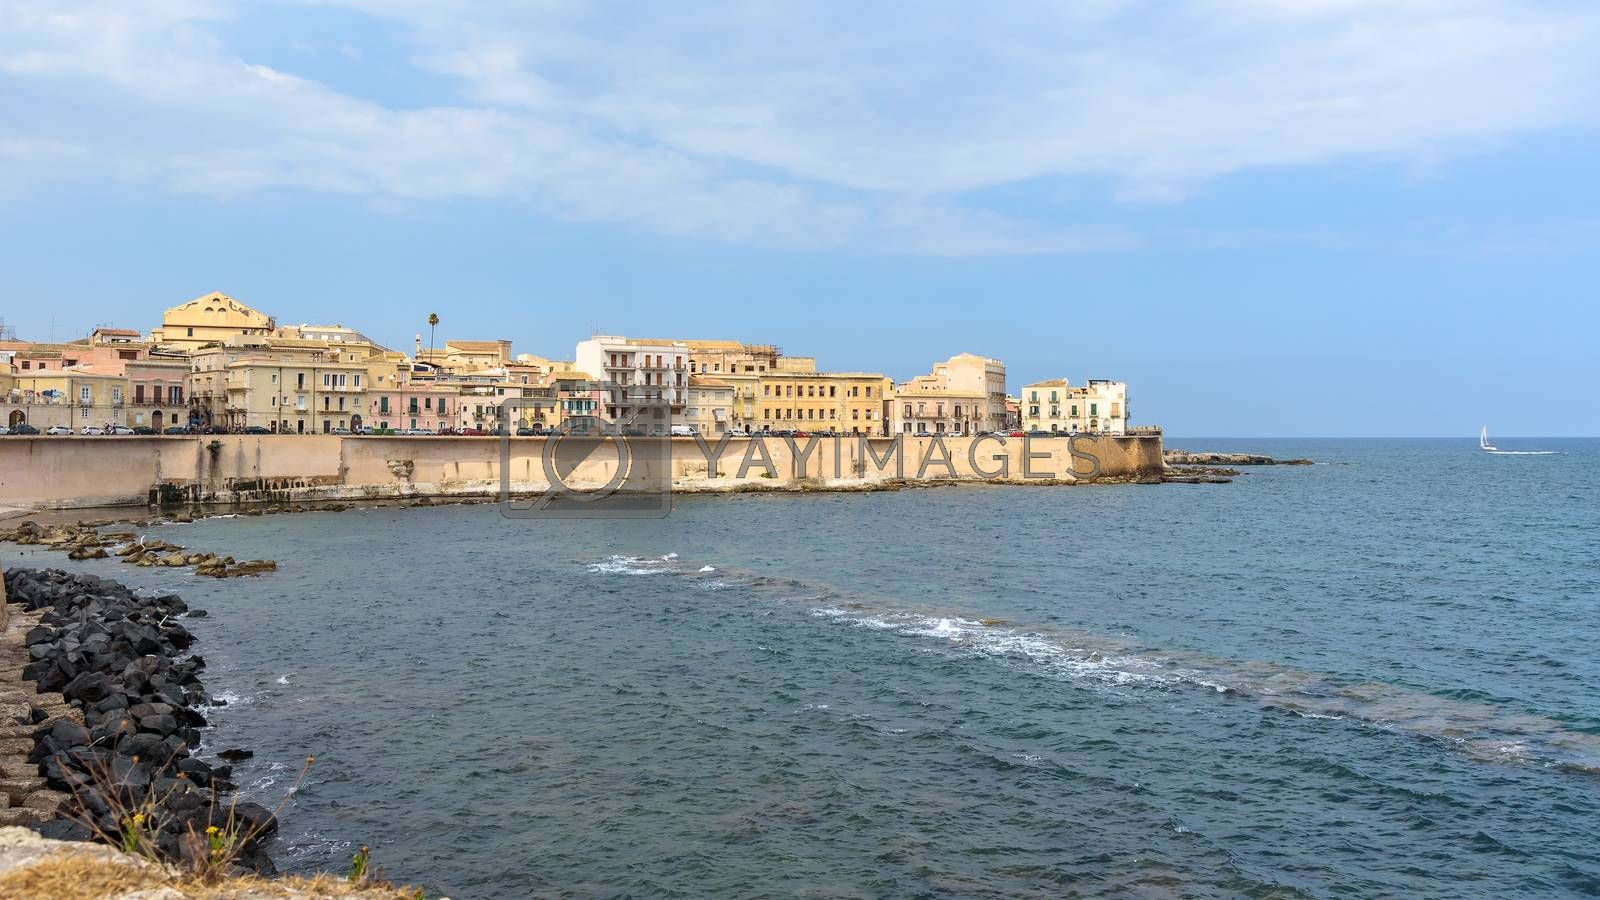 Royalty free image of Waterfront of Ortygia Island in Syracuse by mkos83